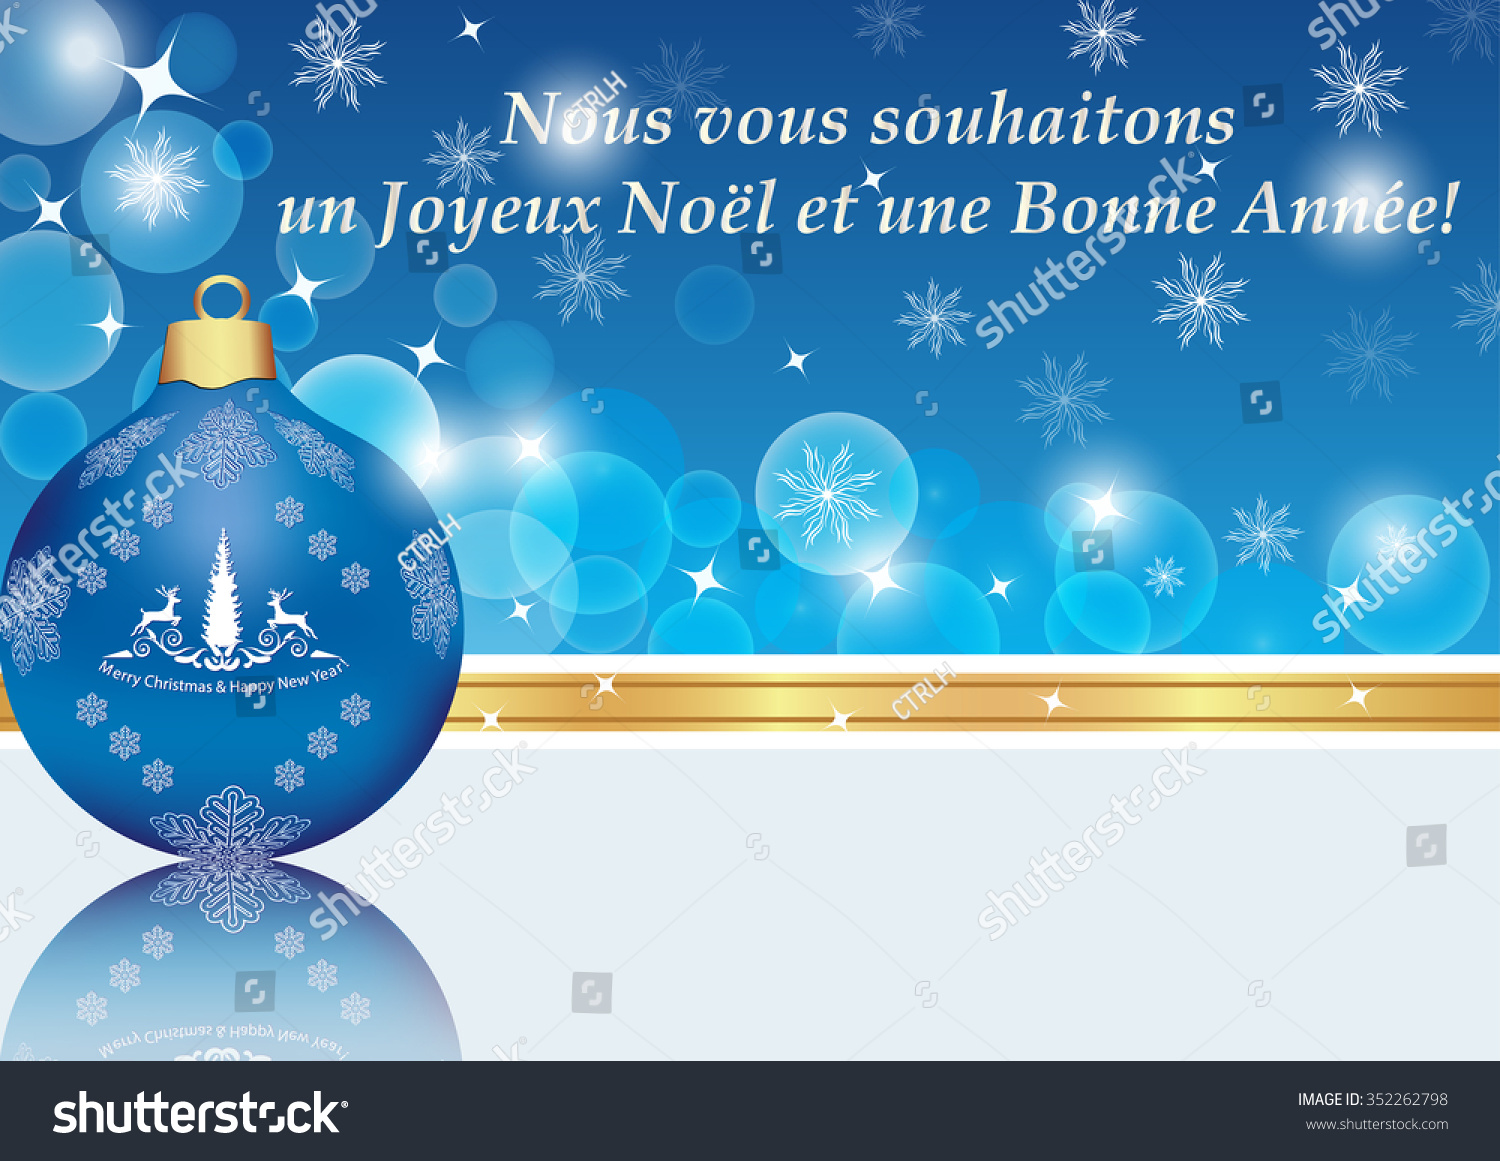 New year greeting card message french stock illustration 352262798 new year greeting card with message in french we wish you a merry christmas and kristyandbryce Gallery